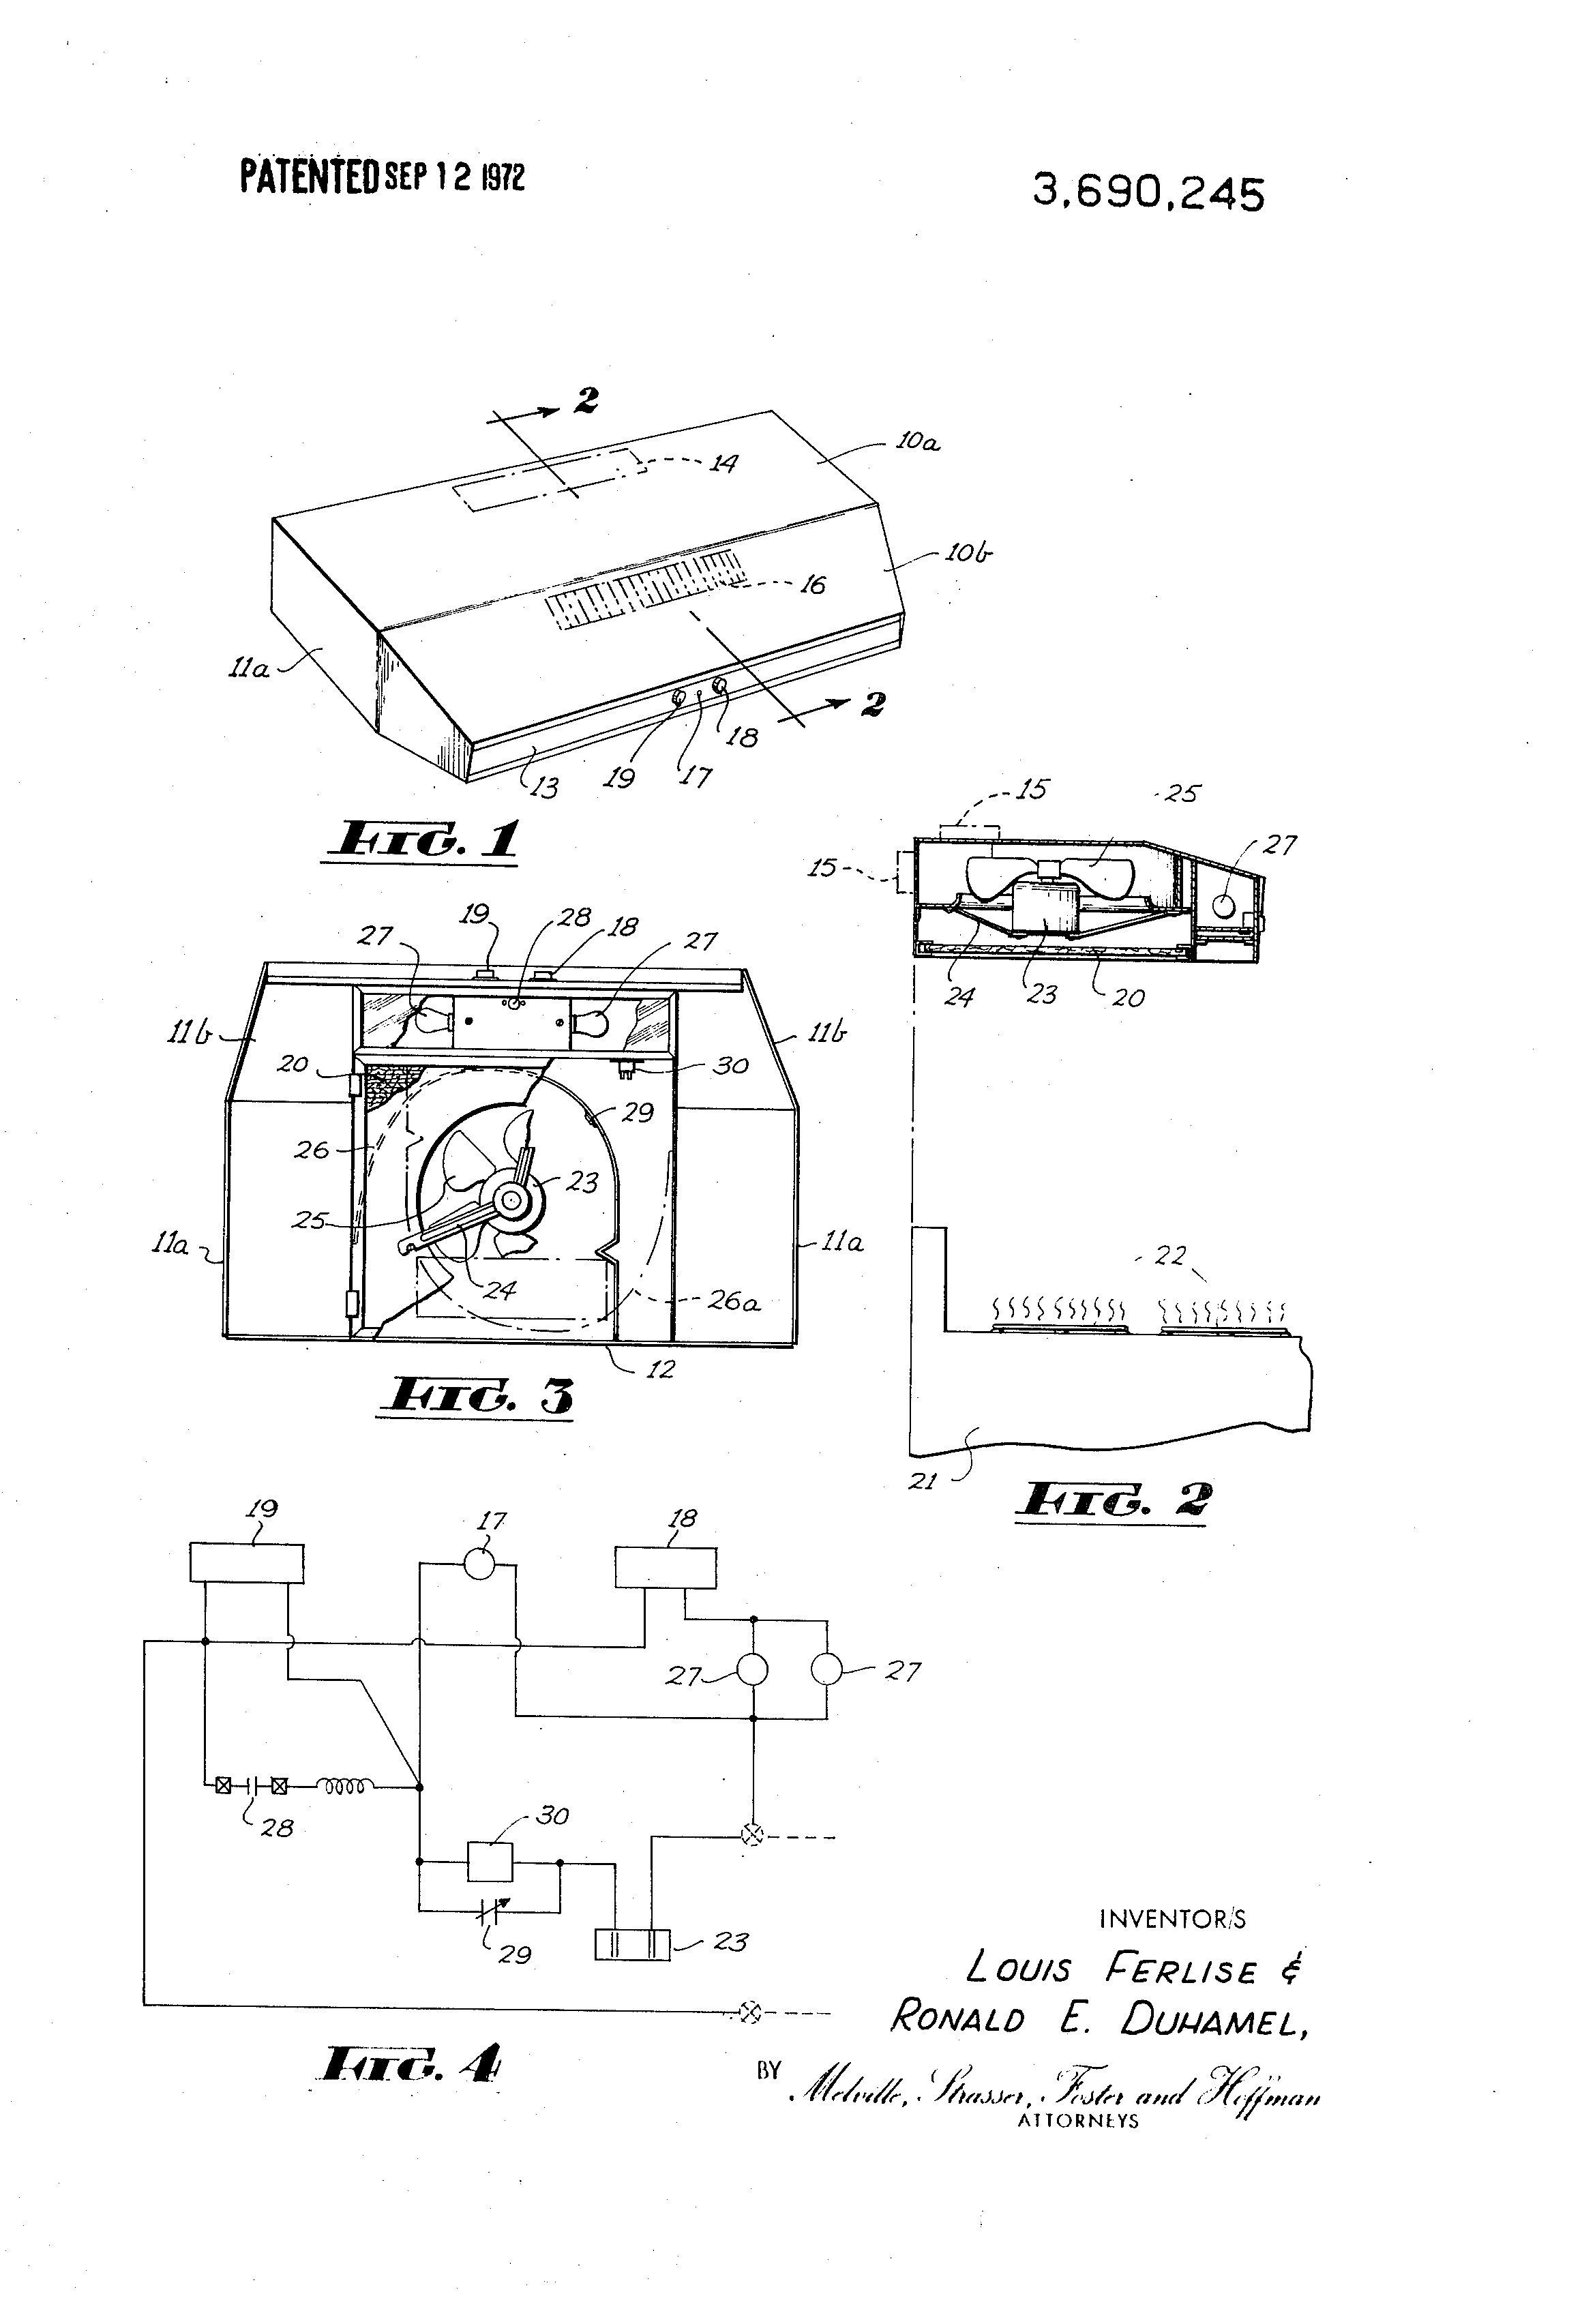 hight resolution of unique ced extractor fan wiring diagram diagram diagramsample diagramtemplate wiringdiagram diagramchart worksheet worksheettemplate